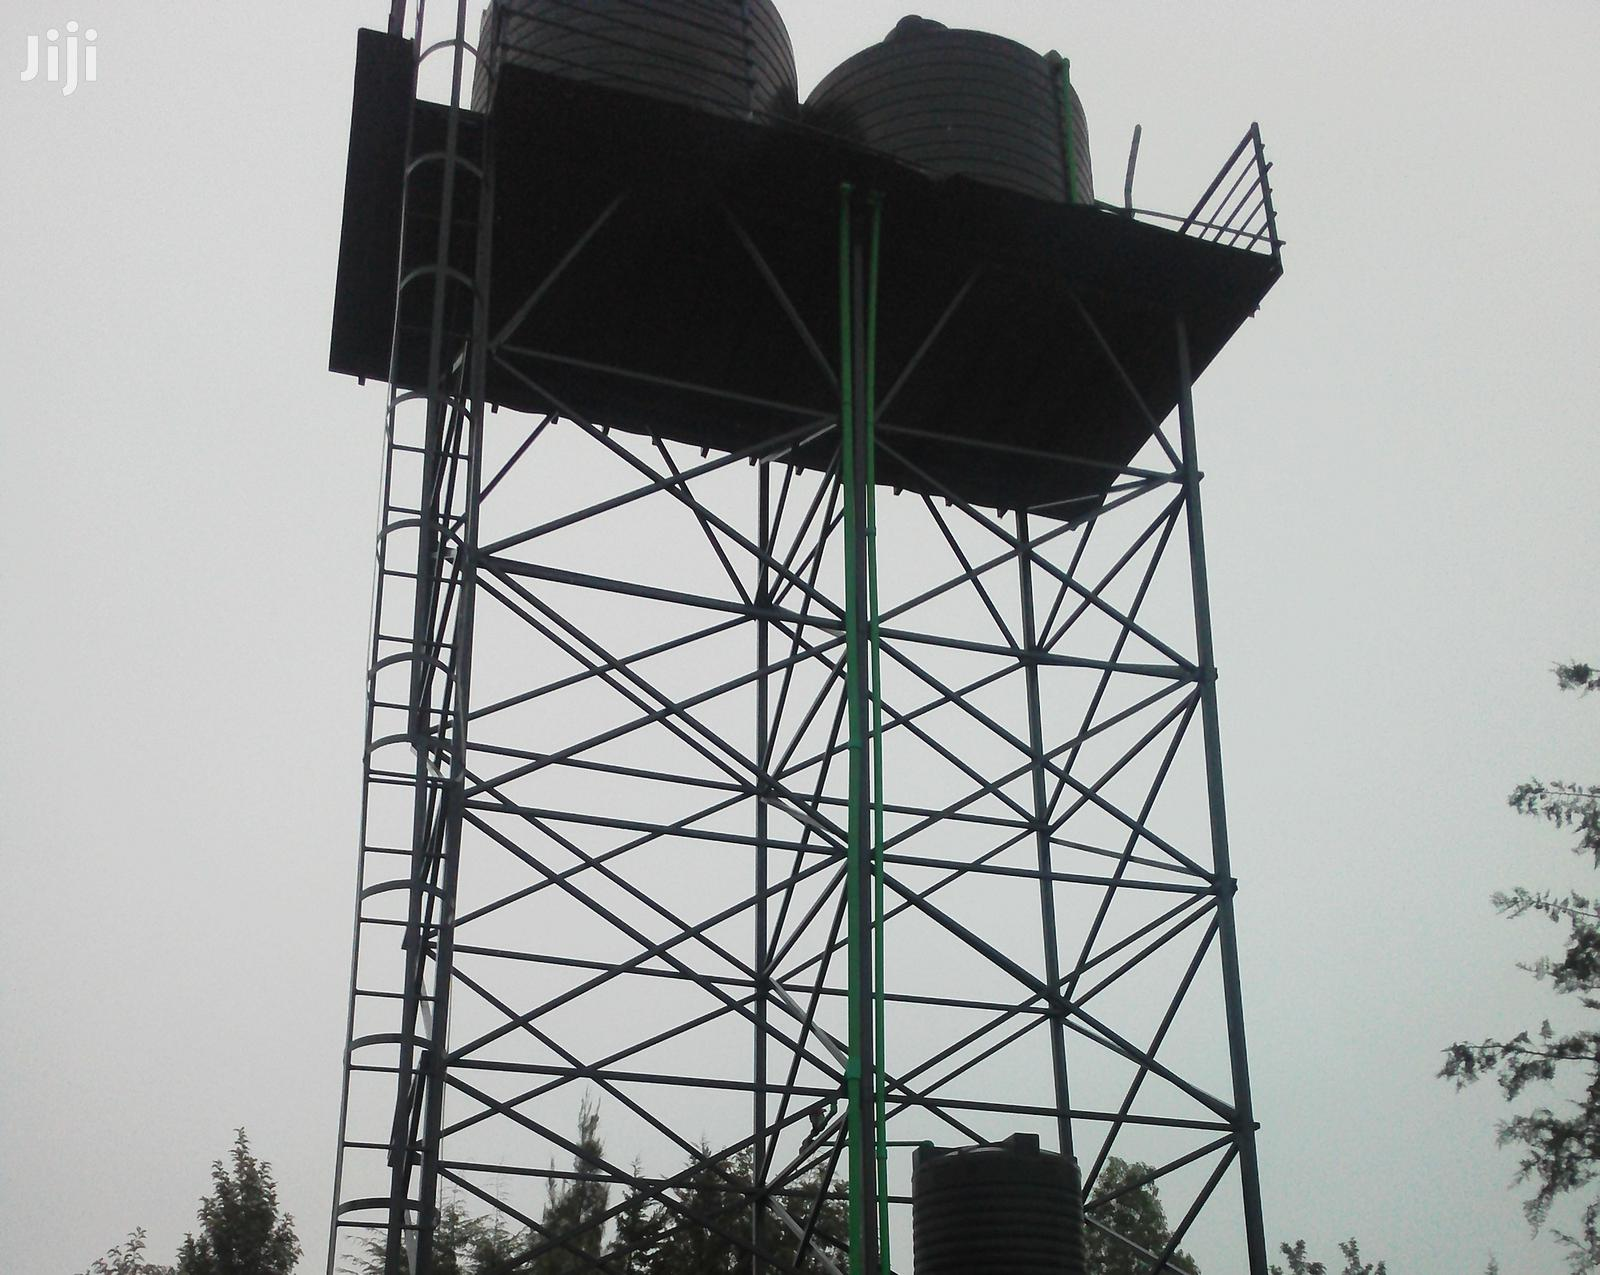 Tank Tower Tank Stand Platform Raised Tank Stand Steel Tower Metal | Other Repair & Construction Items for sale in Karen, Nairobi, Kenya